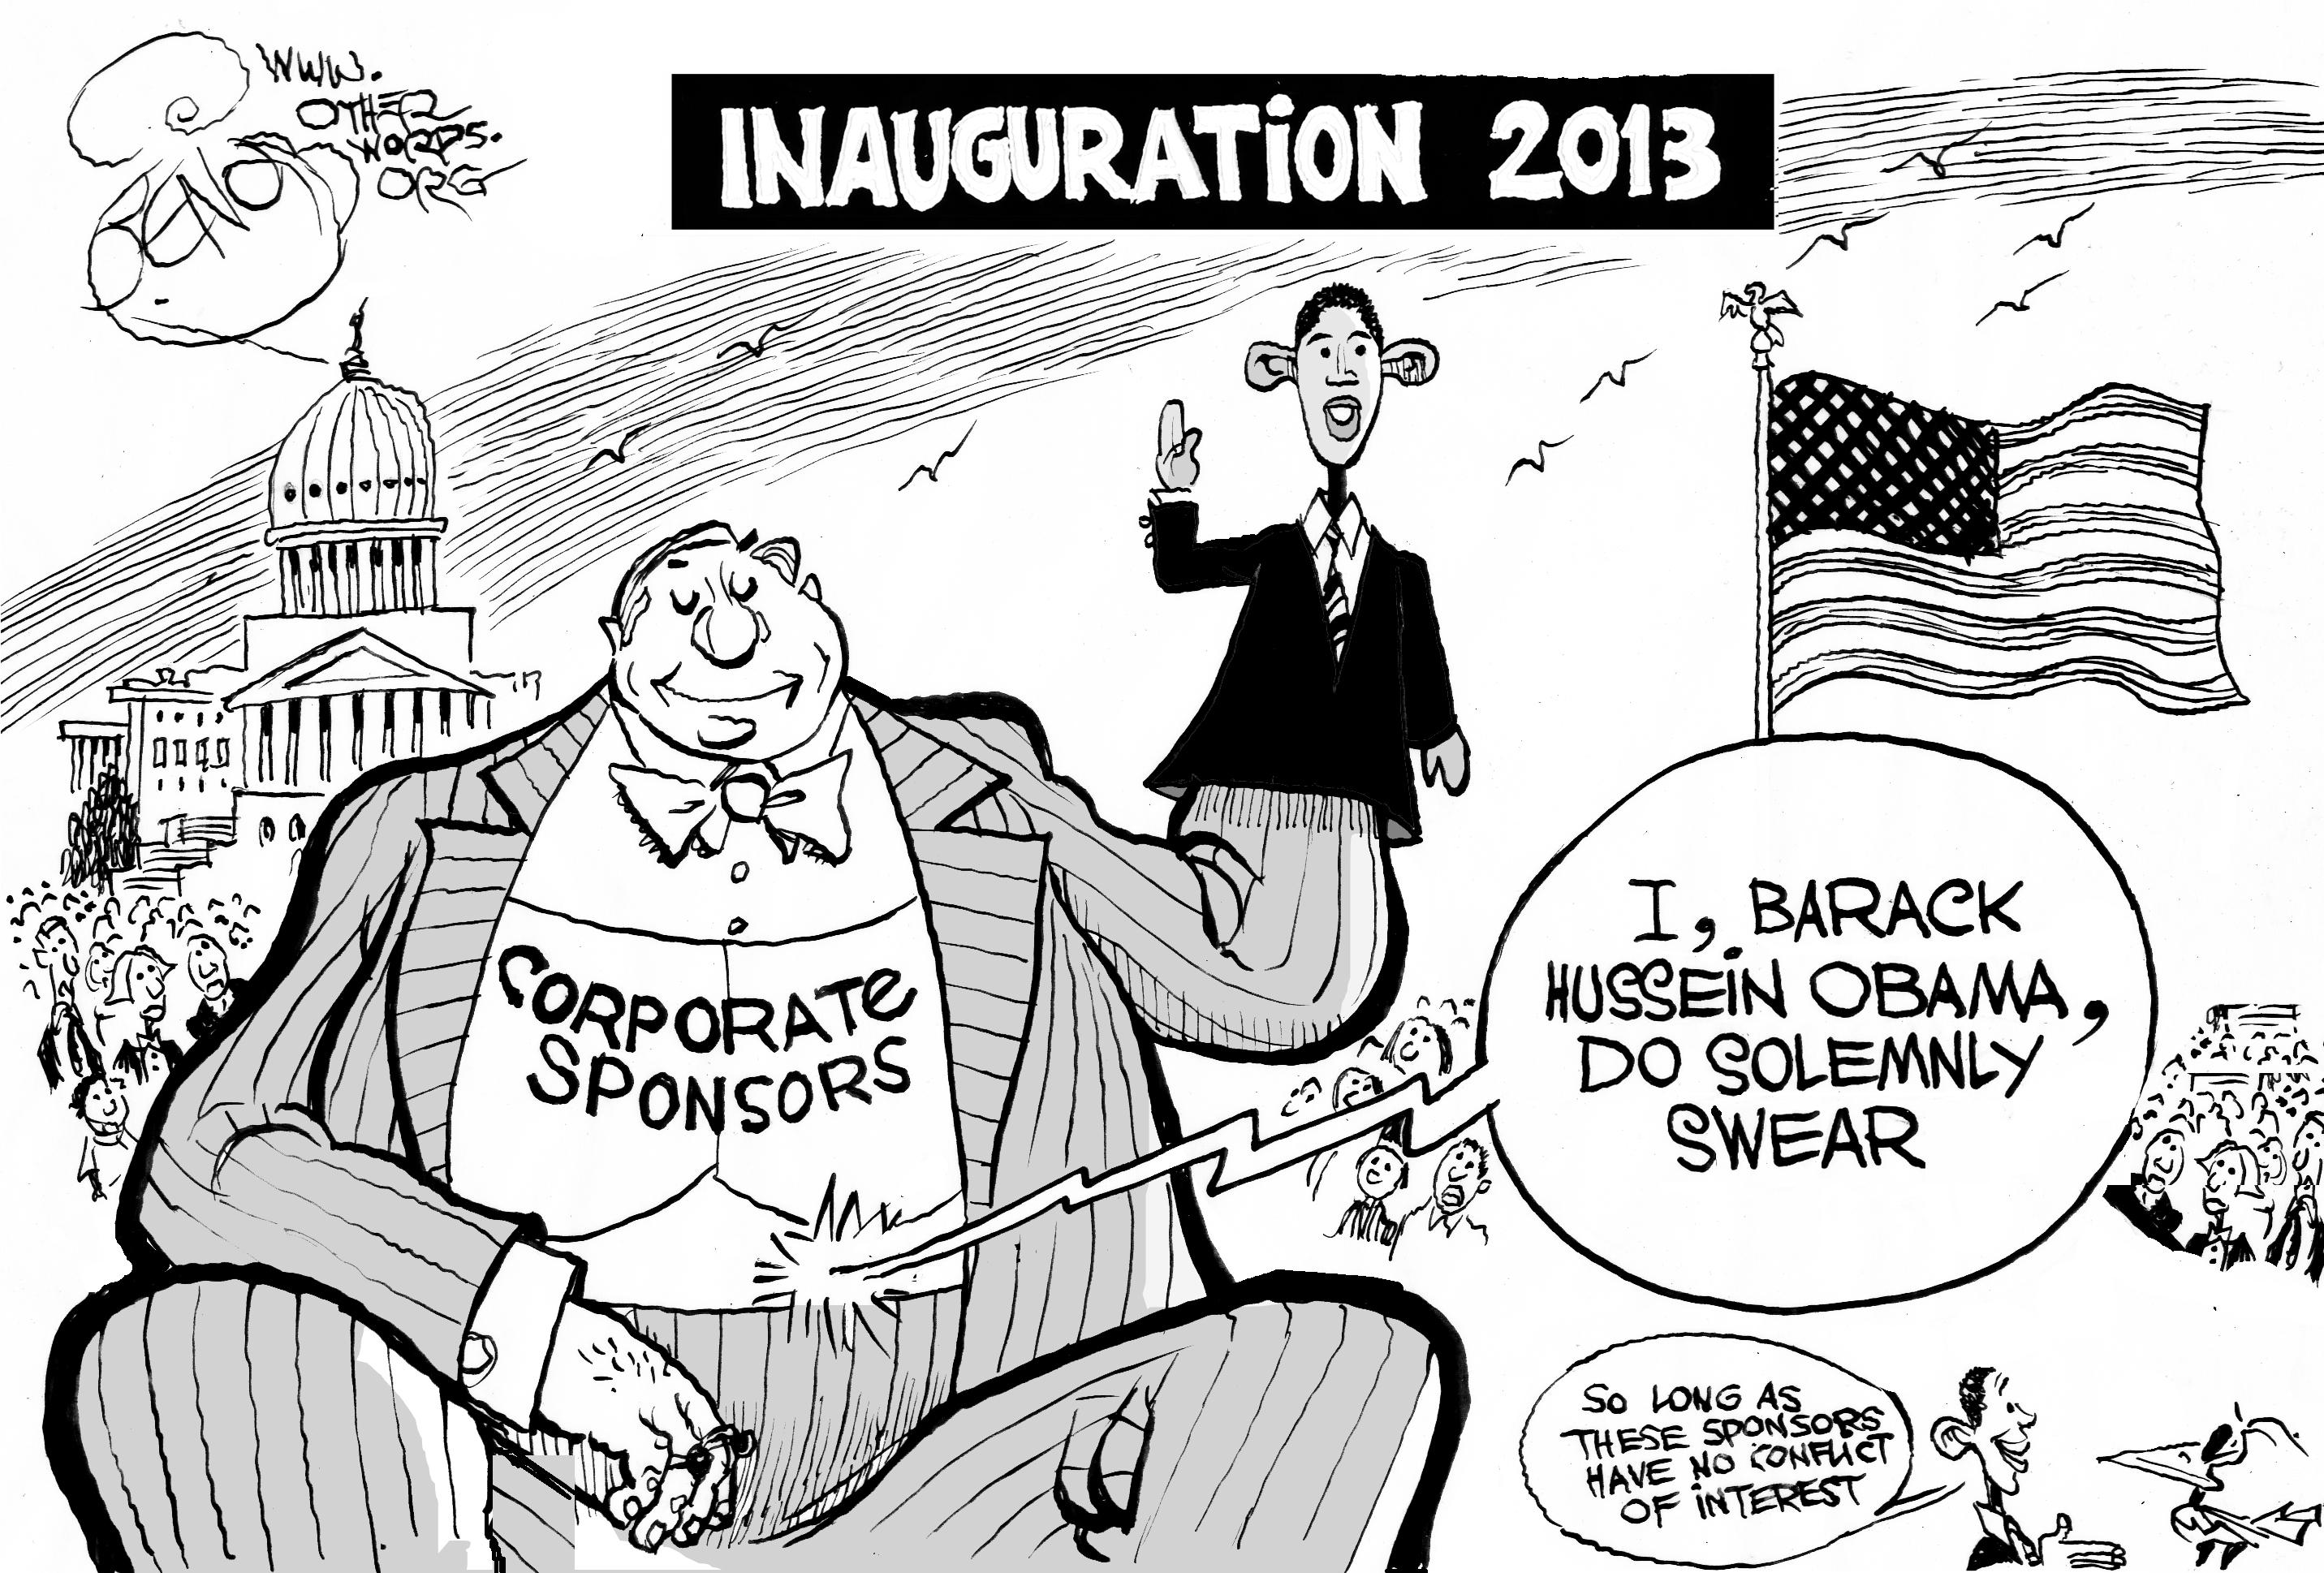 Corporate-Sponsored Inauguration